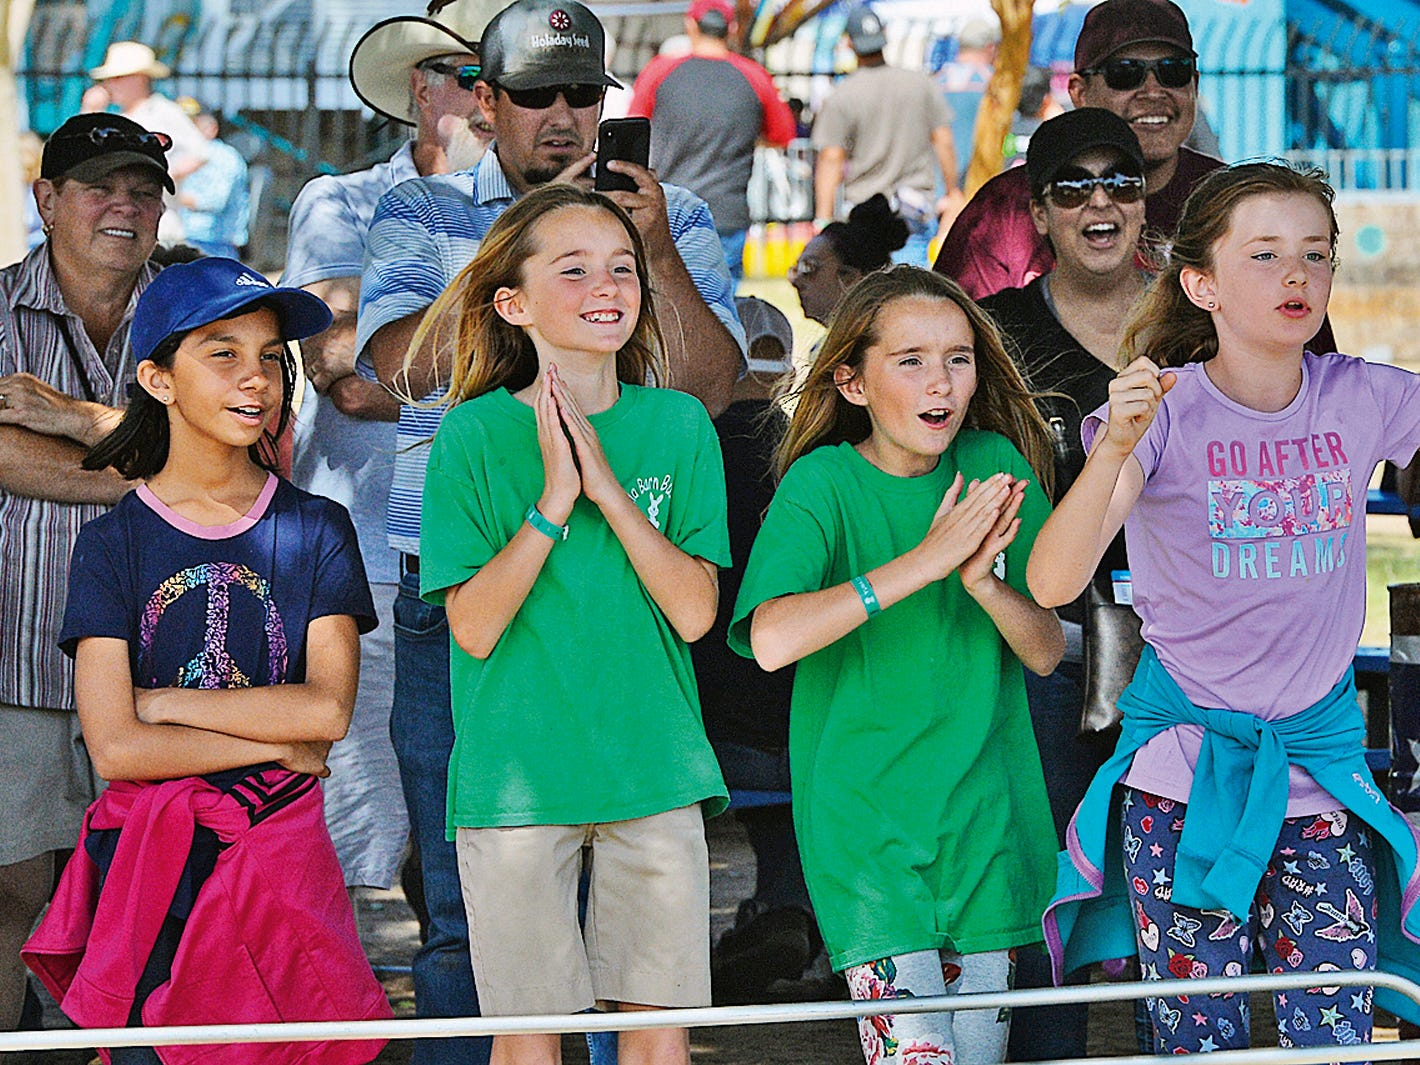 """Racing fans at """"Pork Chop International Speedway"""" cheer for their pig during a Swifty Swine Racing Pigs heat race, Wednesday, April 3, 2019, at the annual Yuma County Fair, in Yuma, Ariz."""